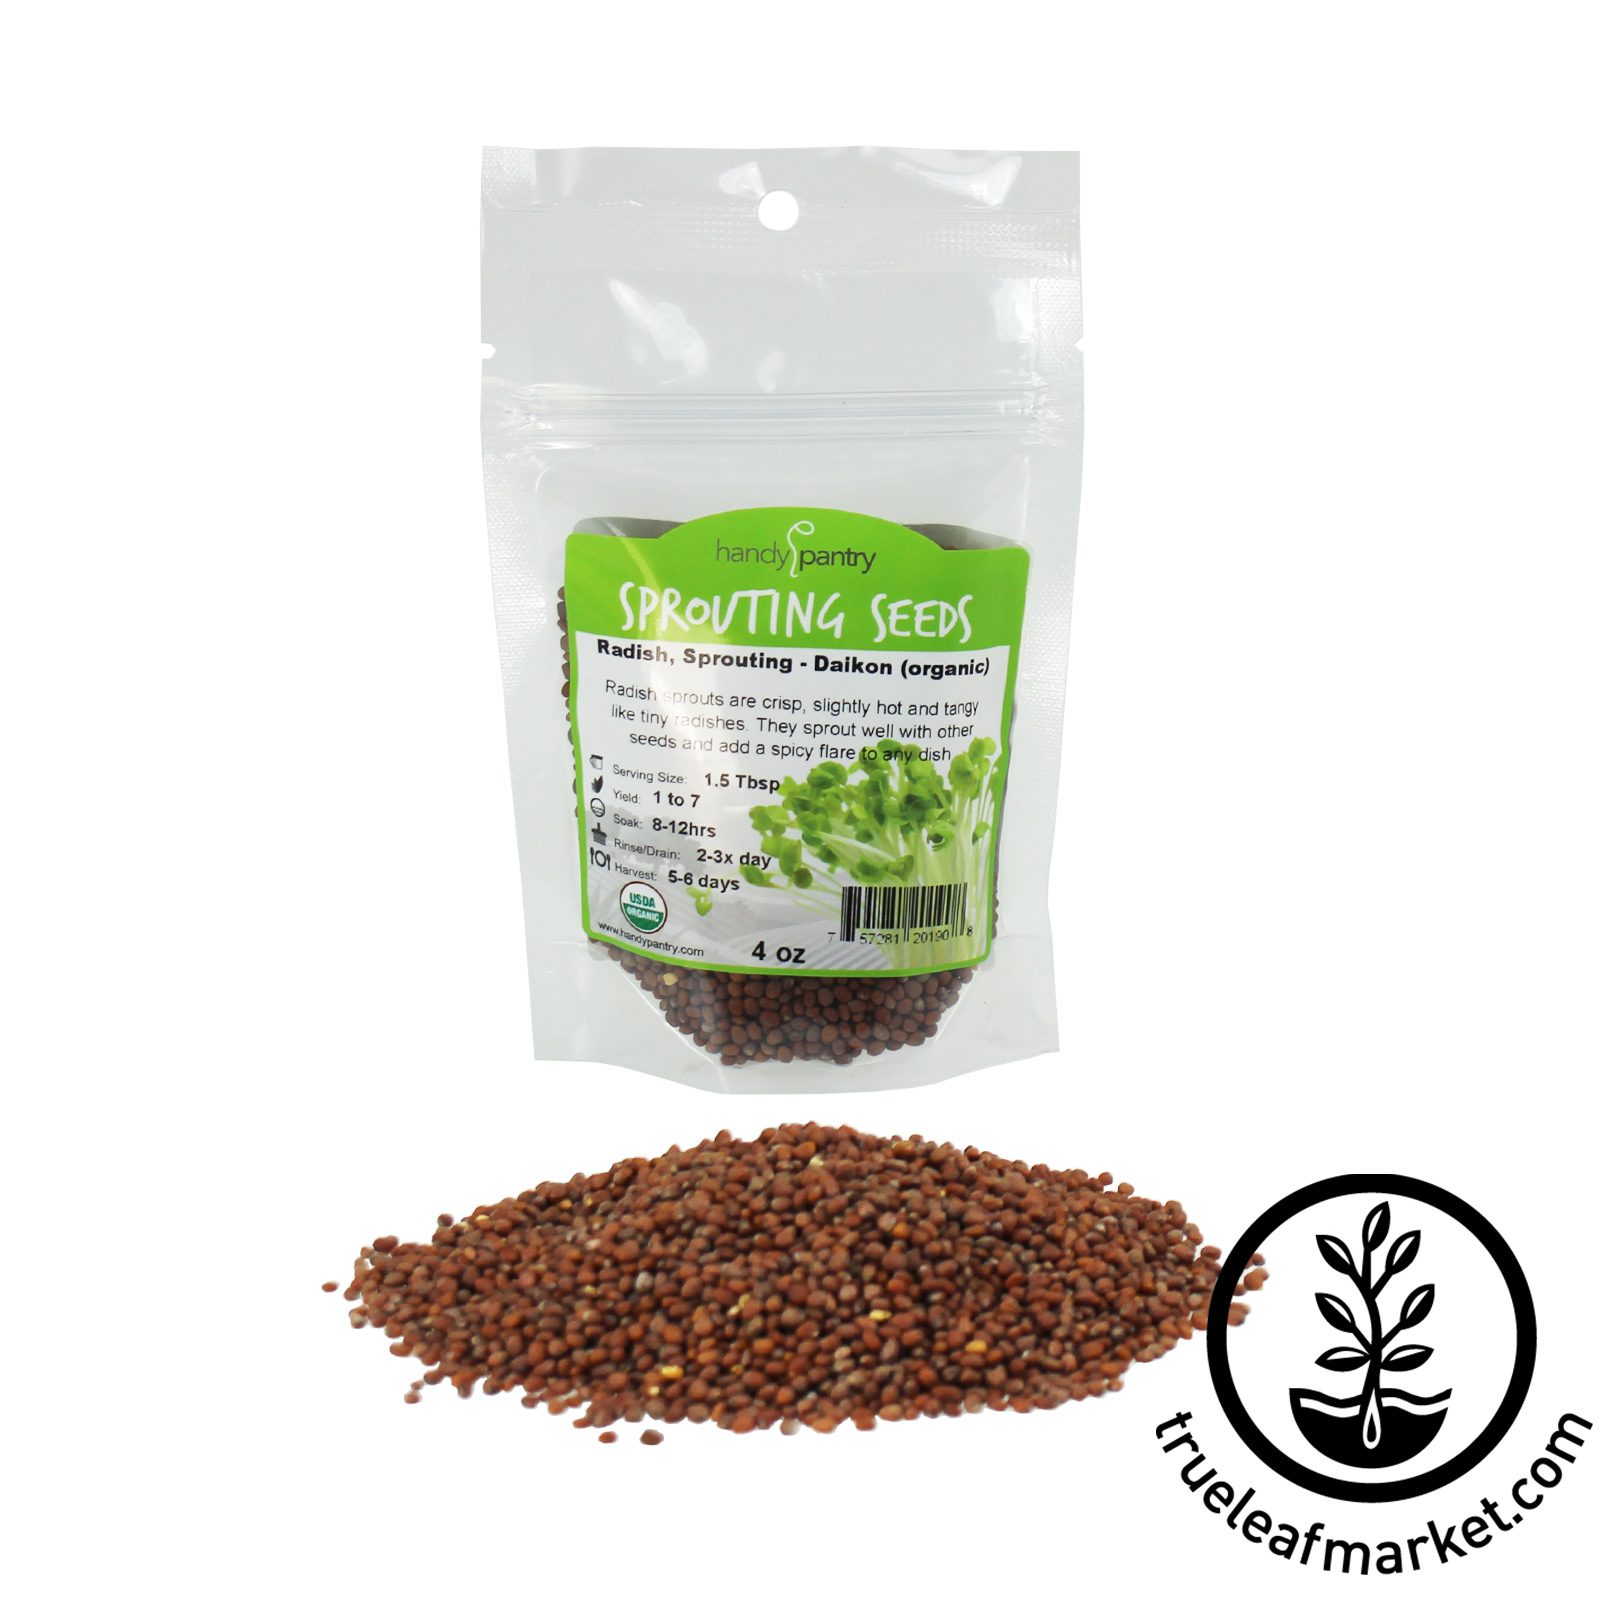 4 oz - Organic Radish Seeds for Sprouts